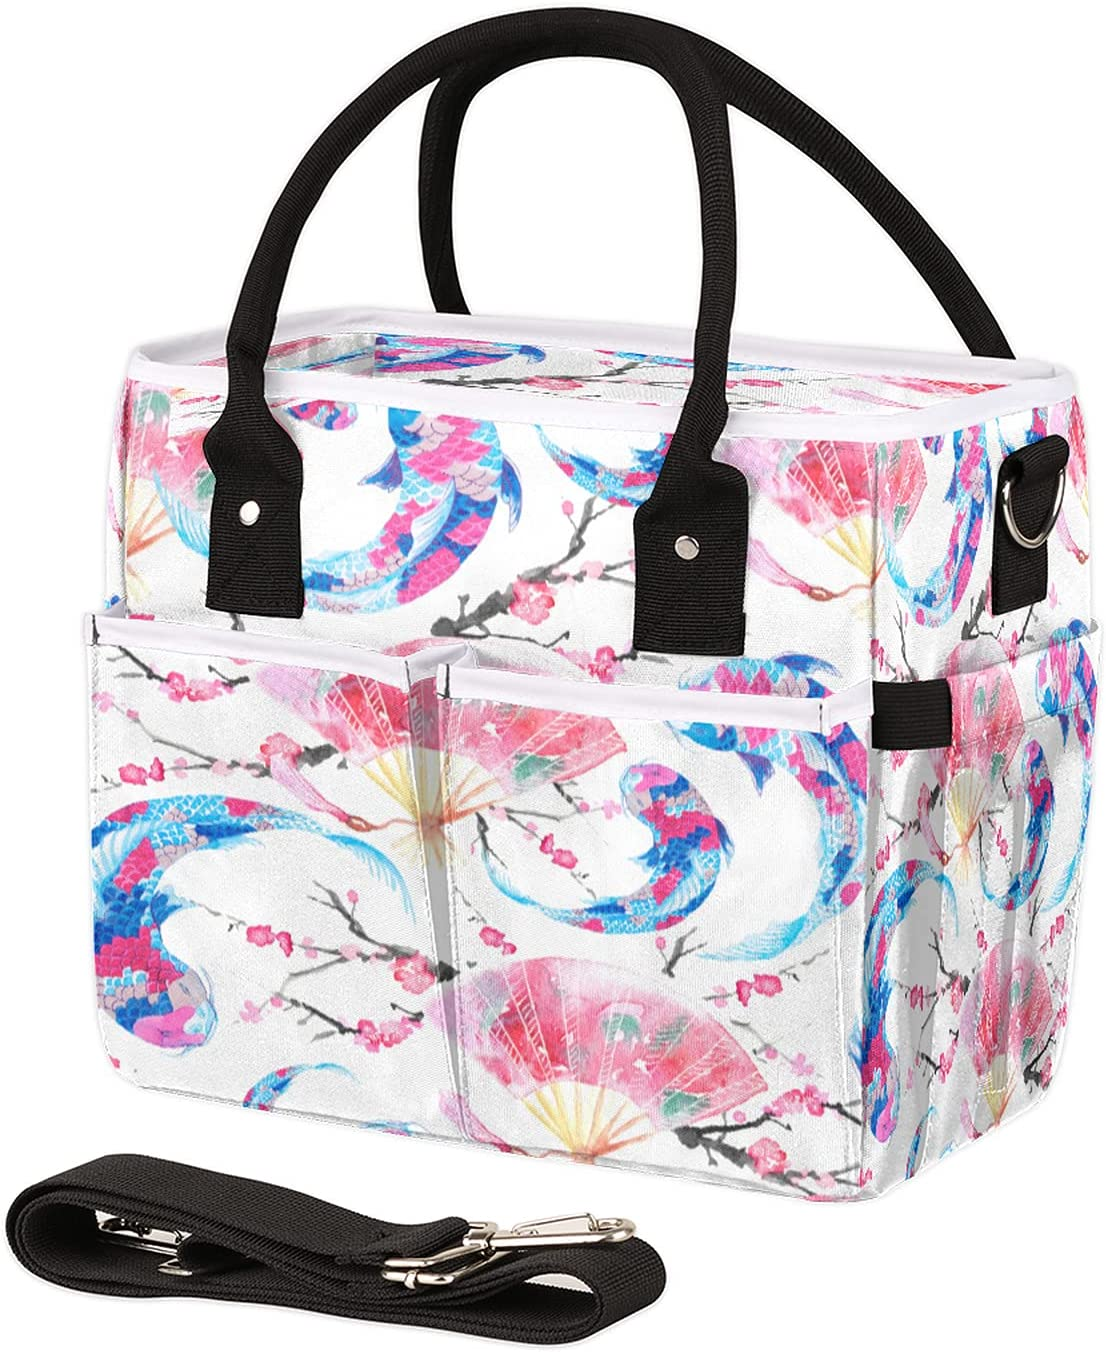 67% OFF of fixed price Choice Insulated Lunch Bag for Women Japanese Men Carp Leakproof Flower